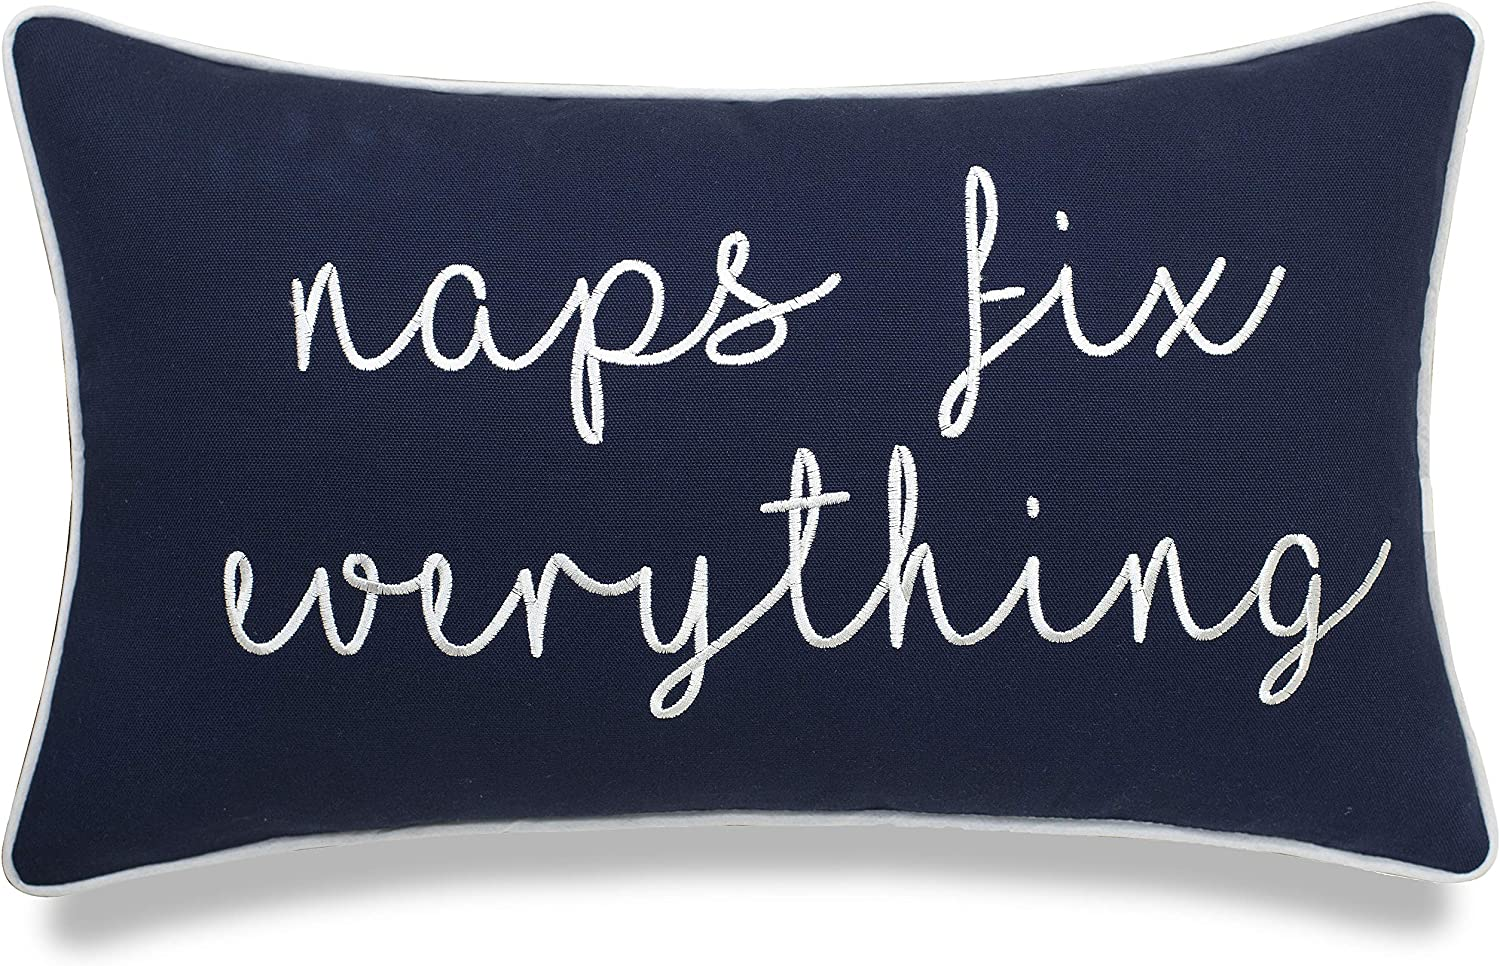 EURASIA DECOR Naps Fix Everything 12x20 Embroidered Decorative Lumbar Accent Throw Pillow Cover-Navy Blue